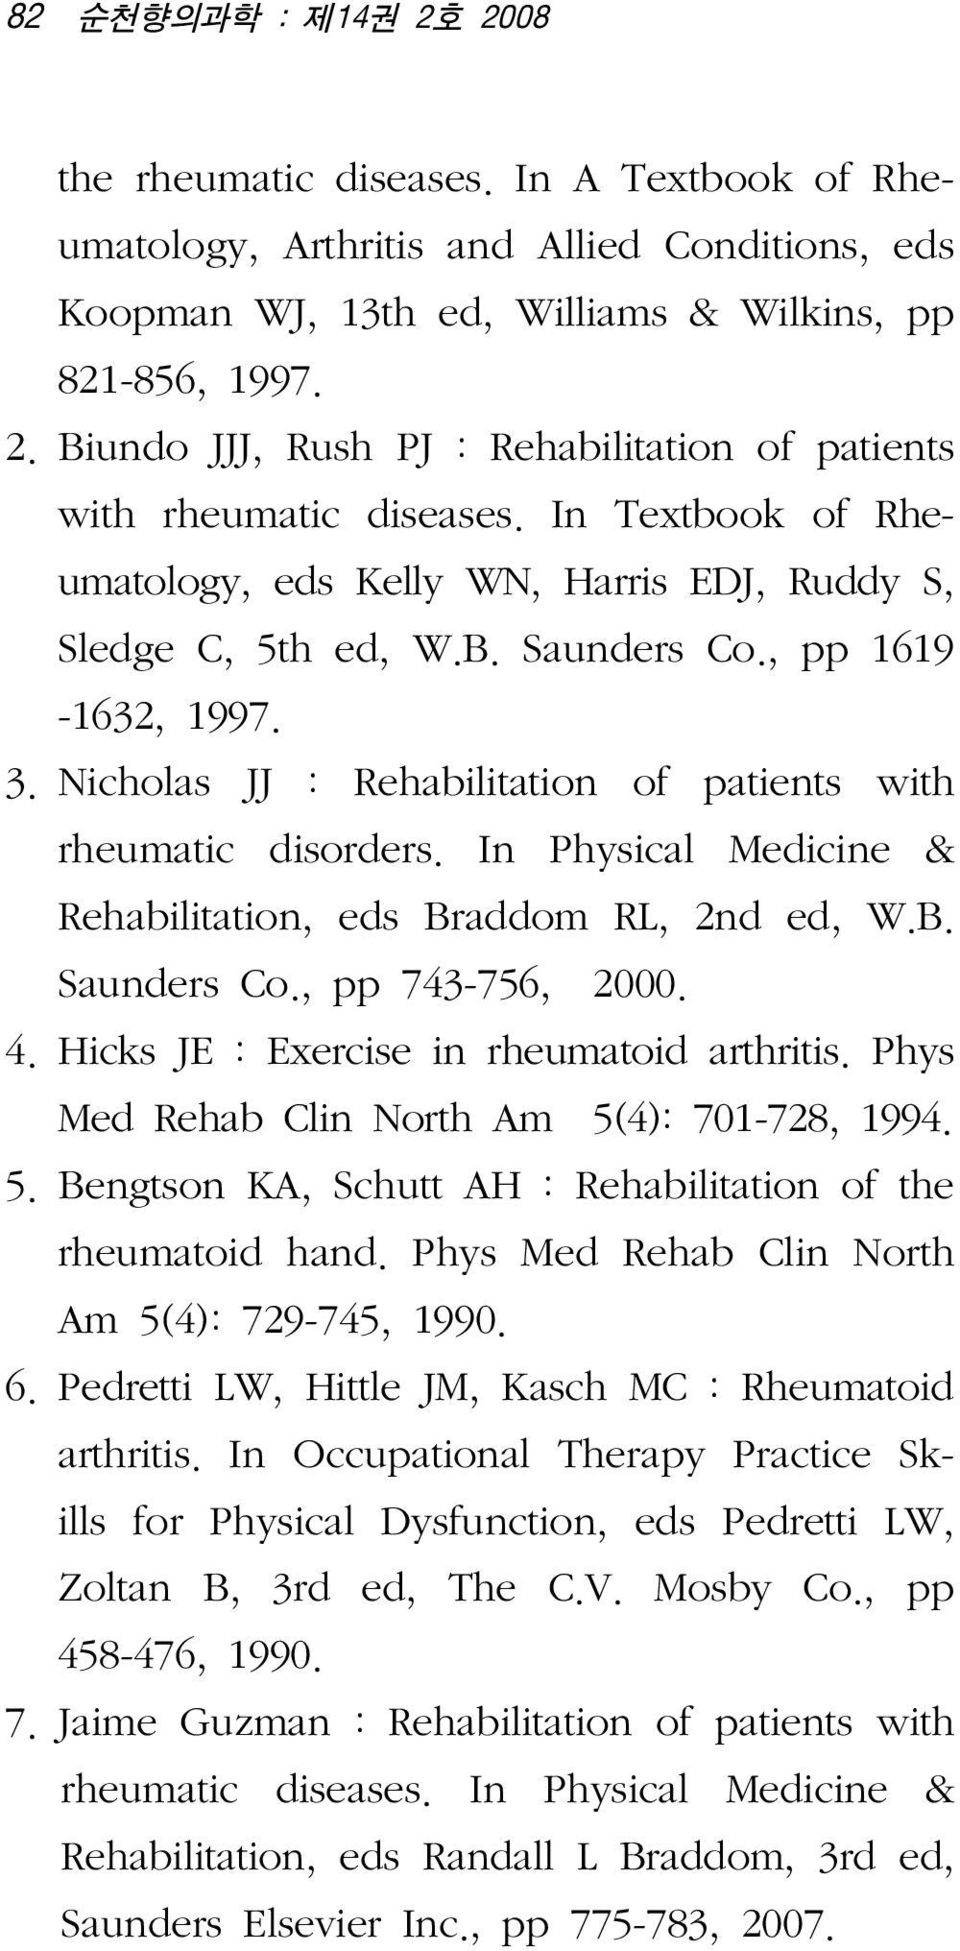 In Physical Medicine & Rehabilitation, eds Braddom RL, 2nd ed, W.B. Saunders Co., pp 743-756, 2000. 4.1Hicks JE : Exercise in rheumatoid arthritis. Phys Med Rehab Clin North Am 5(